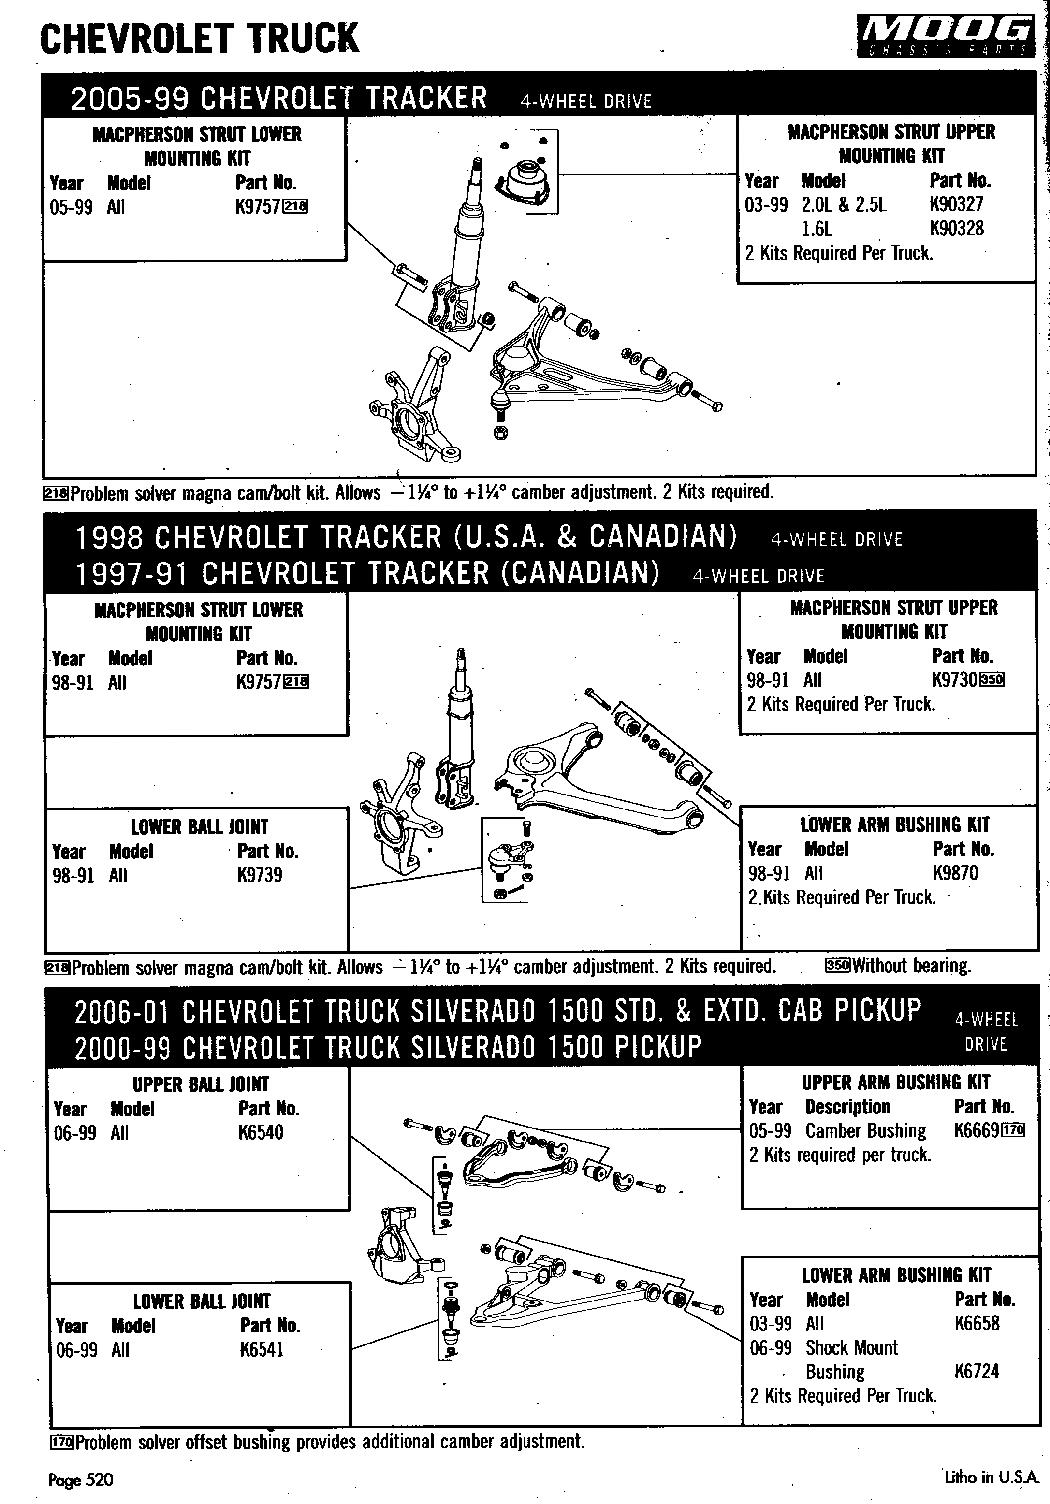 2007 chevy suburban parts diagram motorcycle starter relay wiring tahoe front suspension get free image